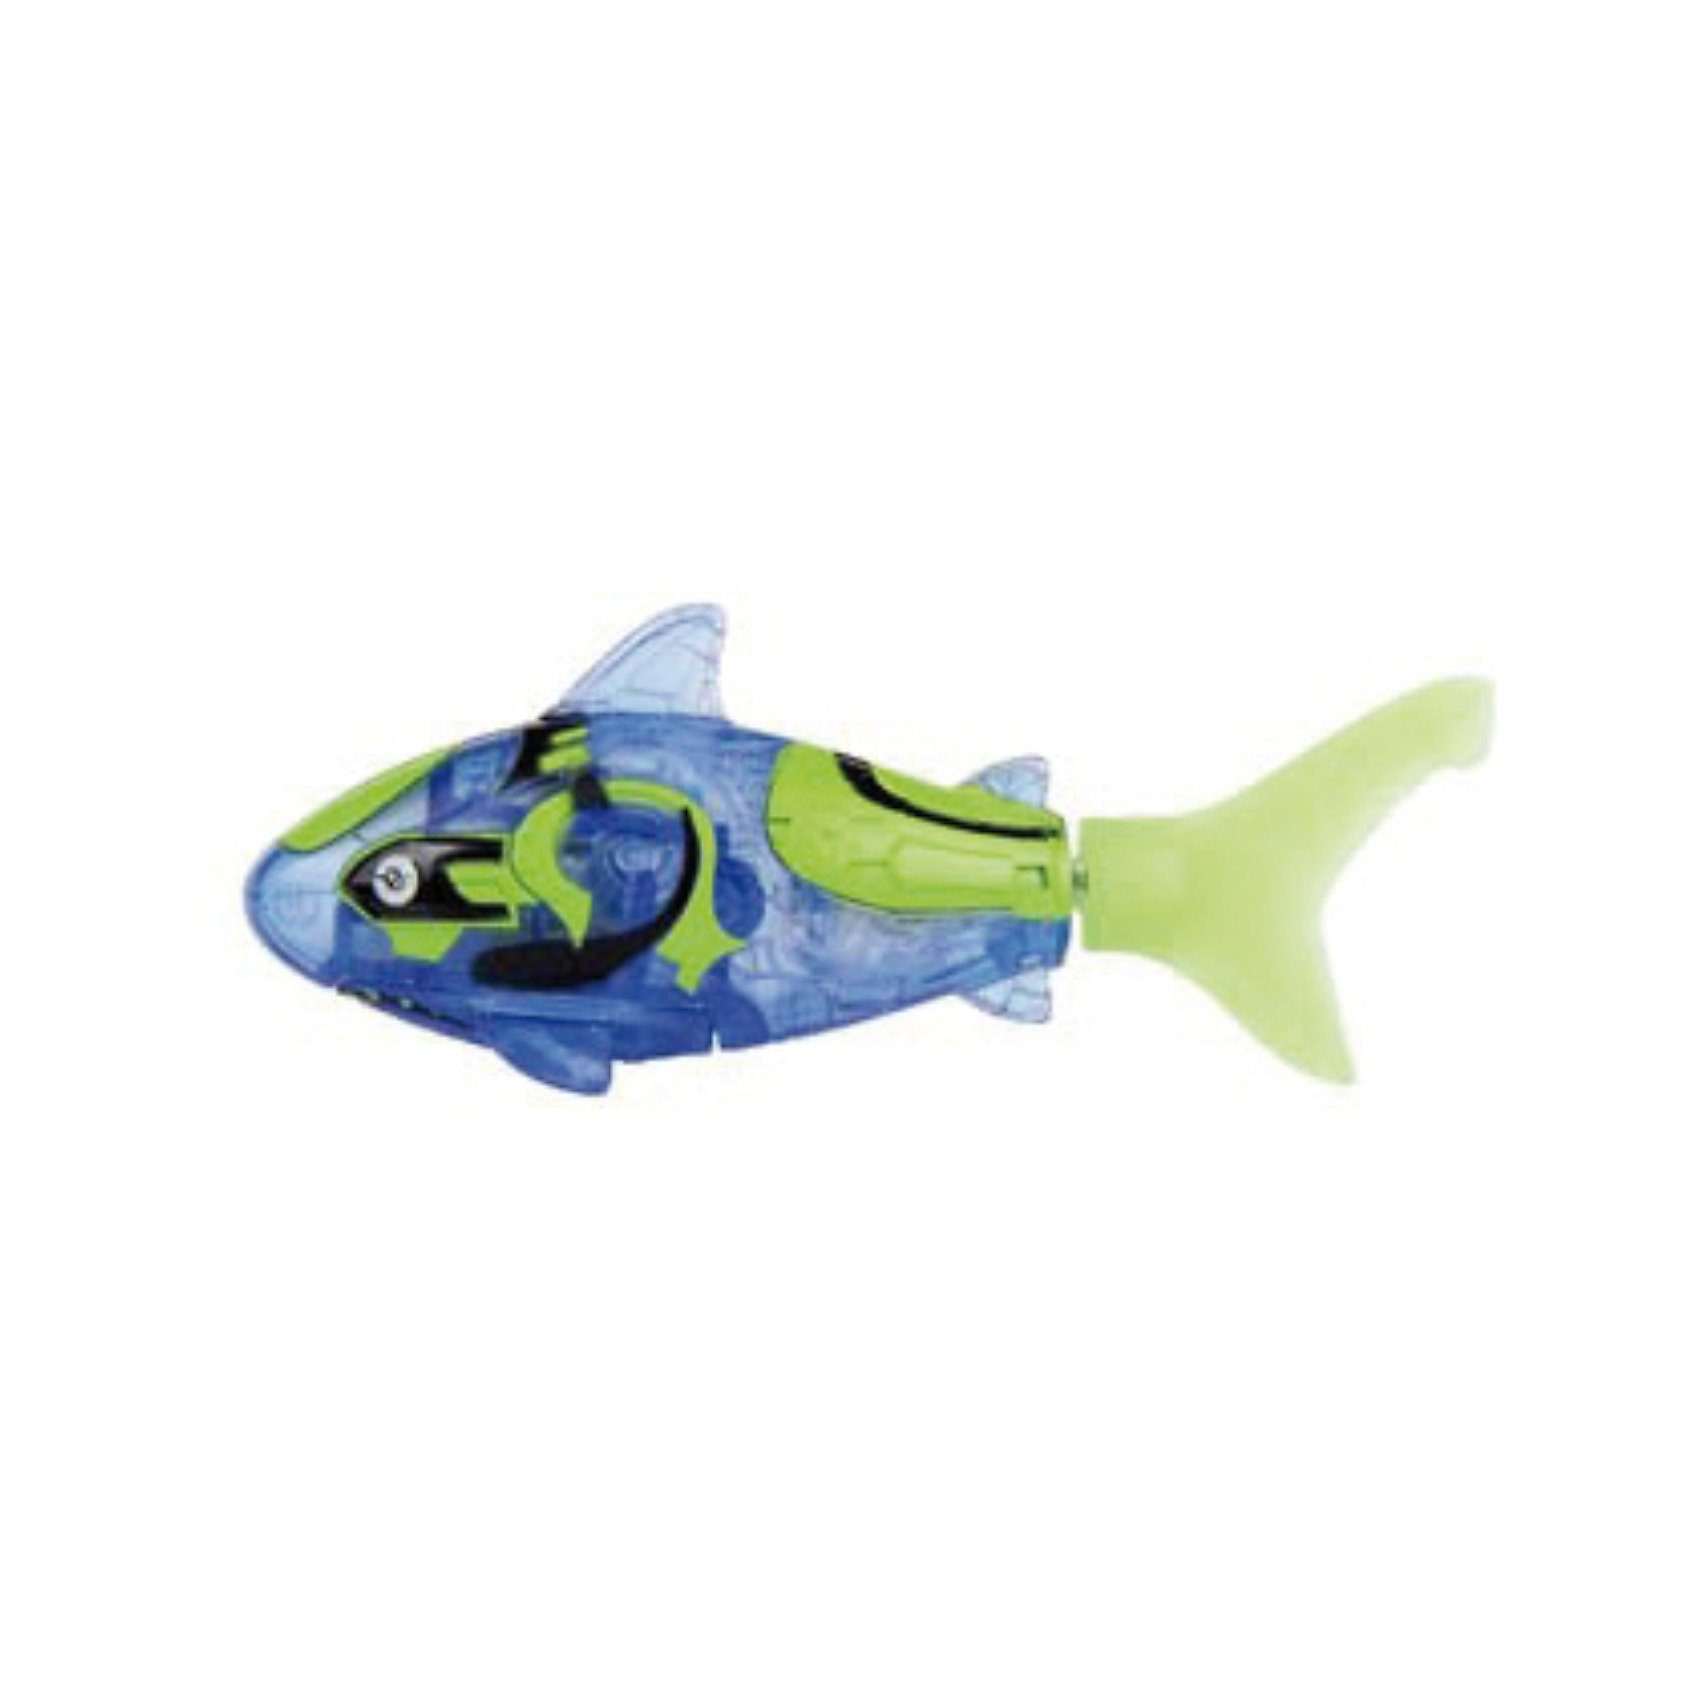 Goliath Robo Fish Shark Blue/Green